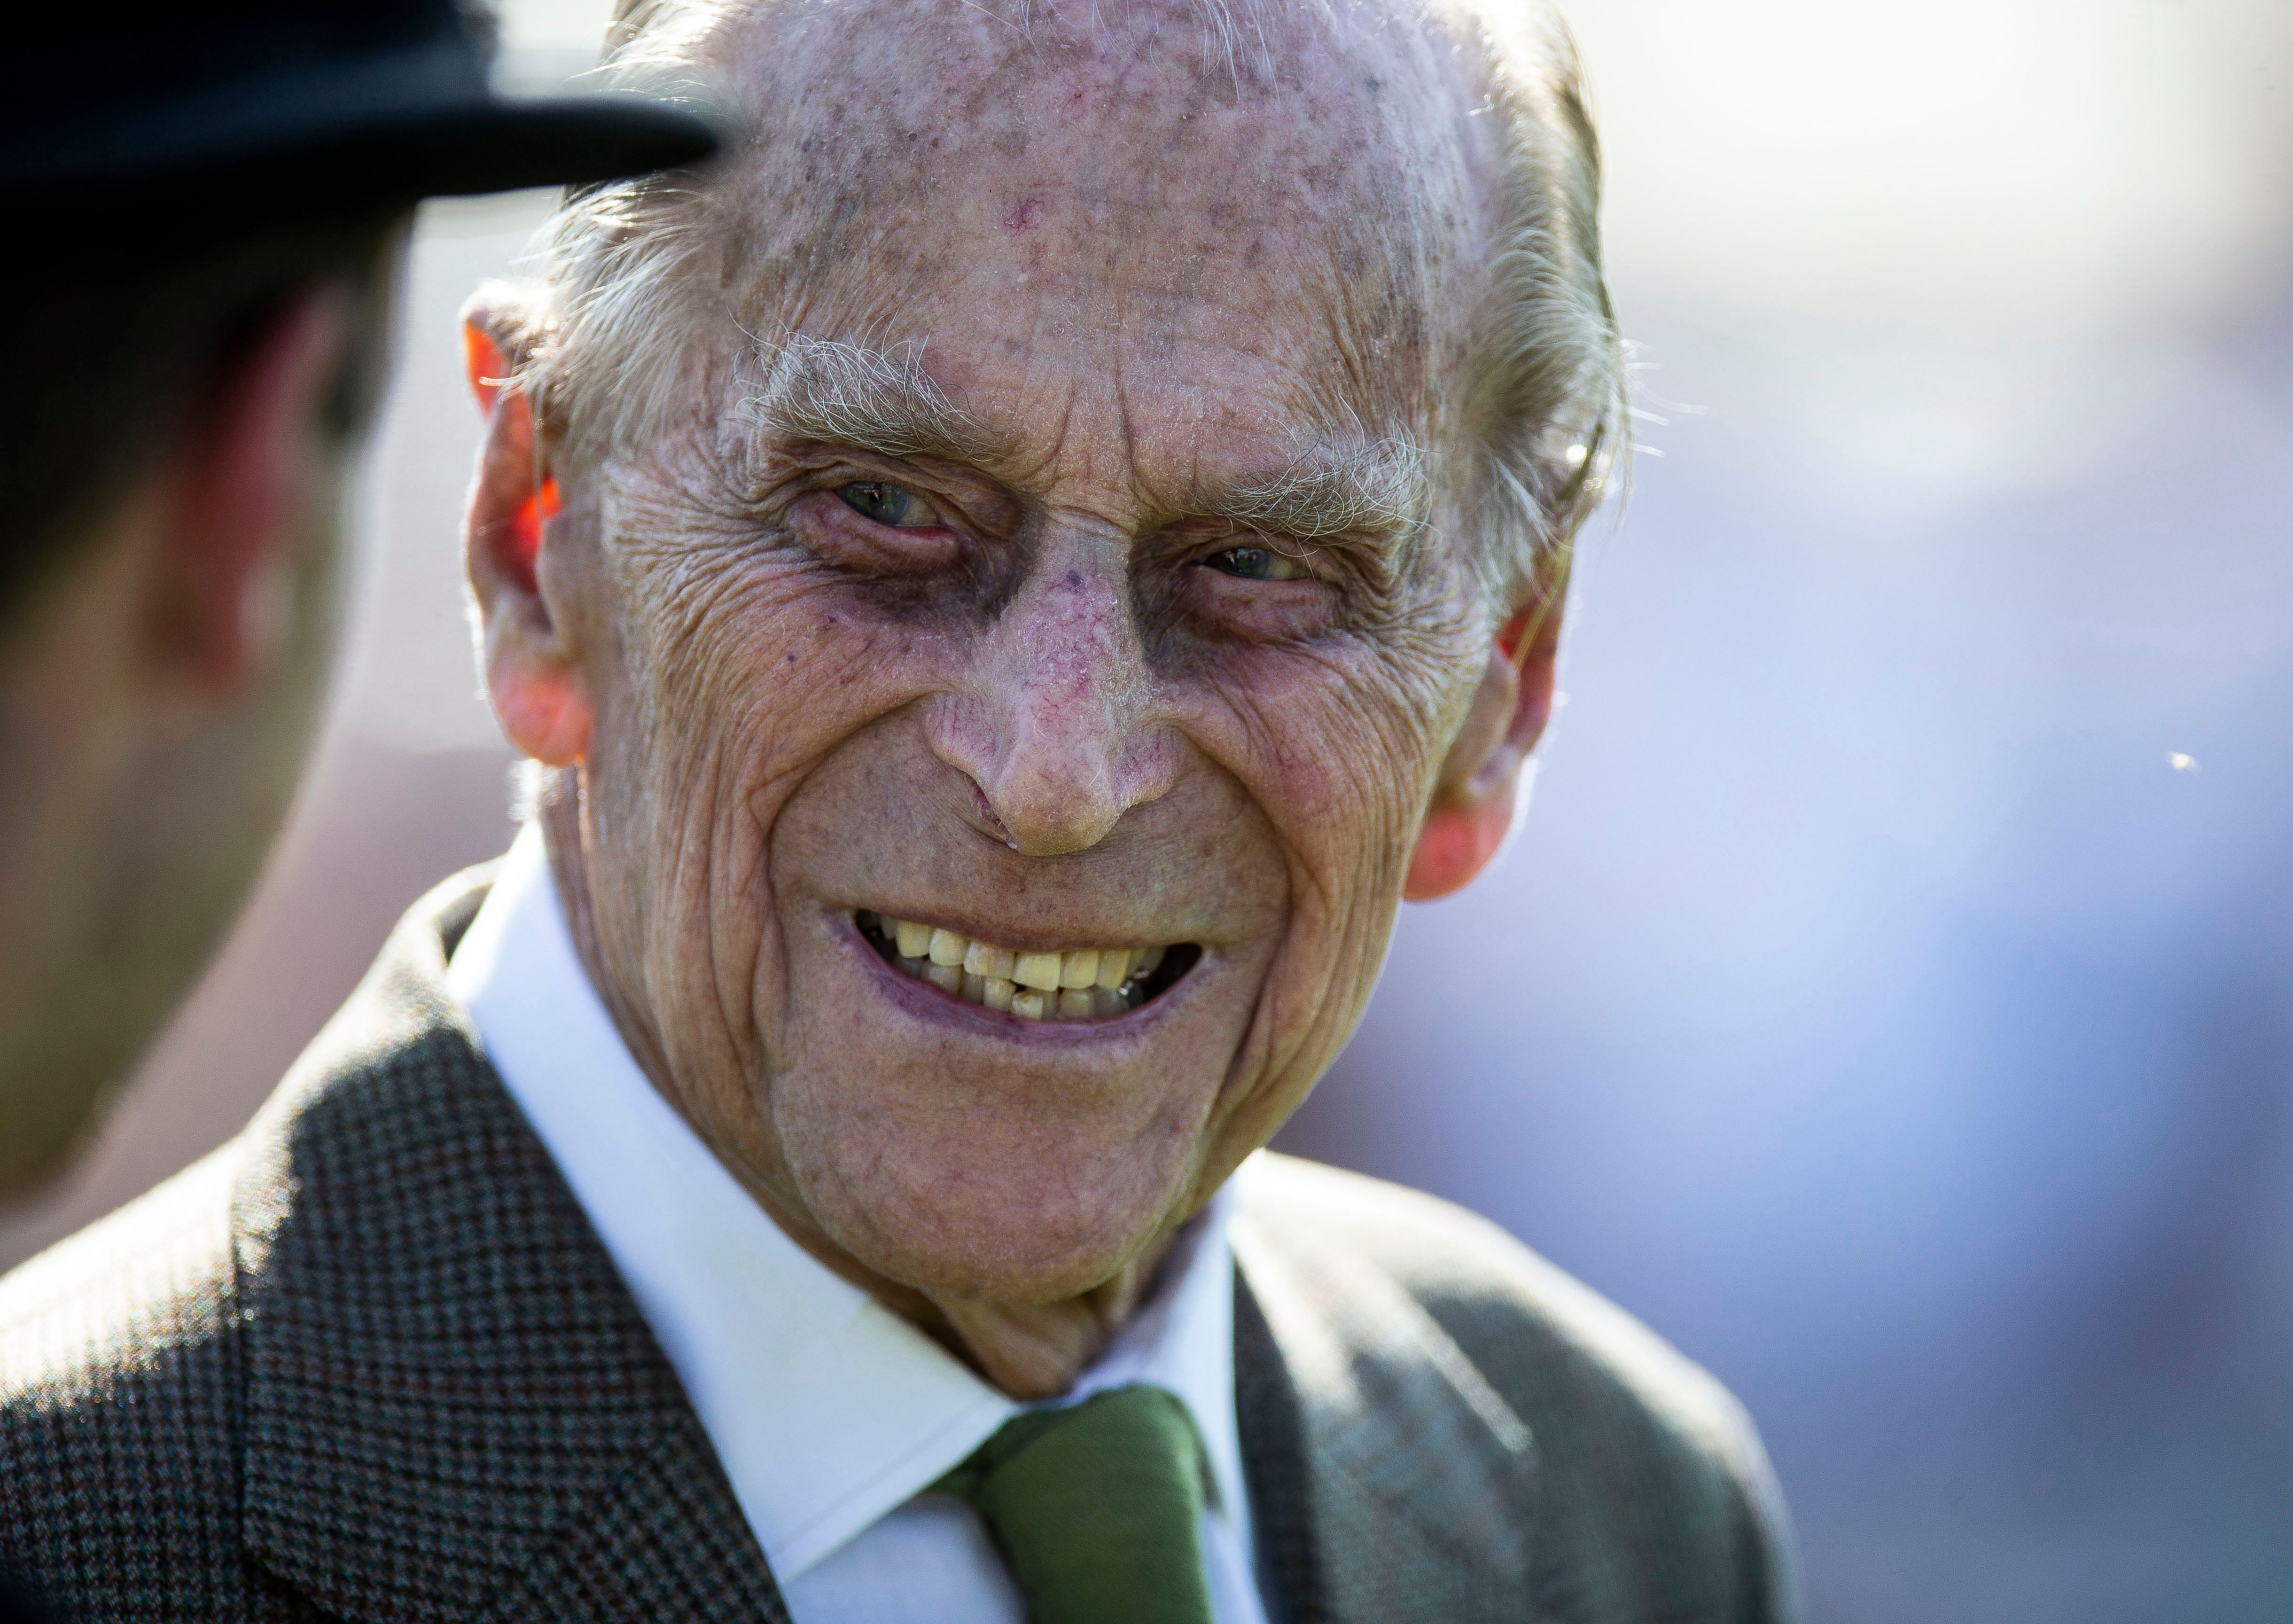 January 17, 2019 - Prince Philip The Duke of Edinburgh was not injured in a two-car crash as he was driving his Land Rover near Sandringham Estate. - File Photo by: zz/KGC-107/STAR MAX/IPx 2018 6/24/18 Prince Philip The Duke of Edinburgh at the Royal Windsor Cup Final at the Guards Polo Club at Smith's Lawn in Windsor Great Park. (Windsor, Berkshire, England, UK)